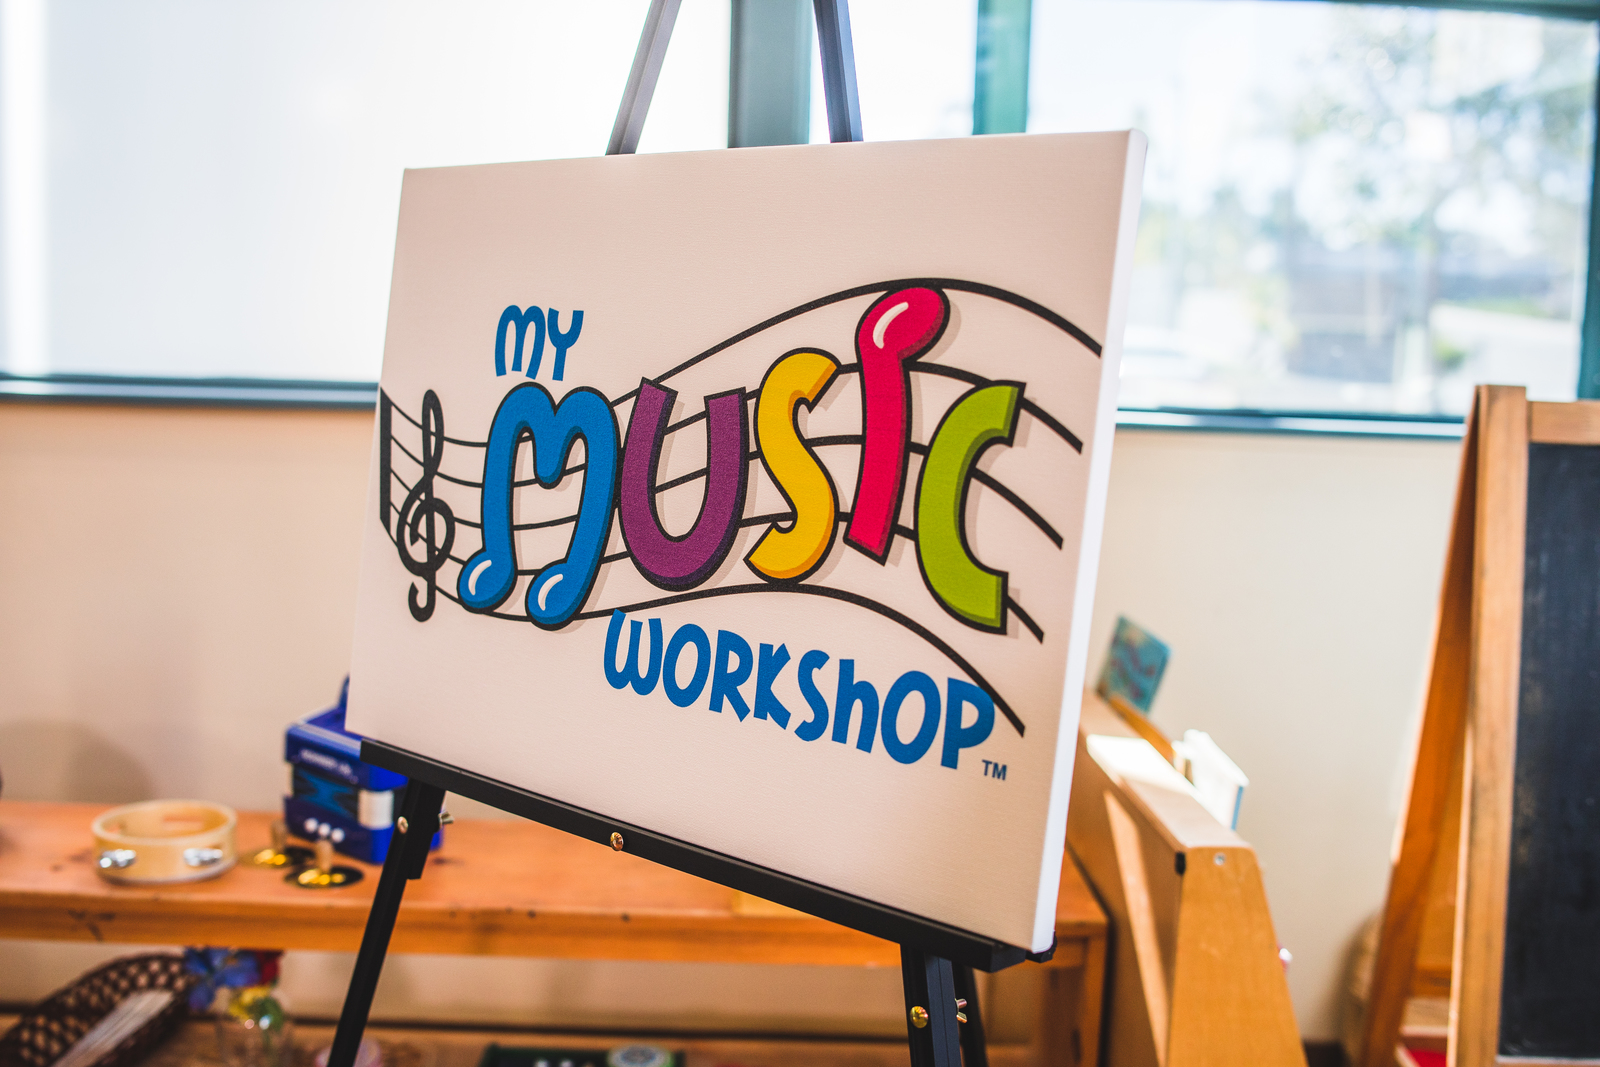 My Music Workshop Logo on Posterboard